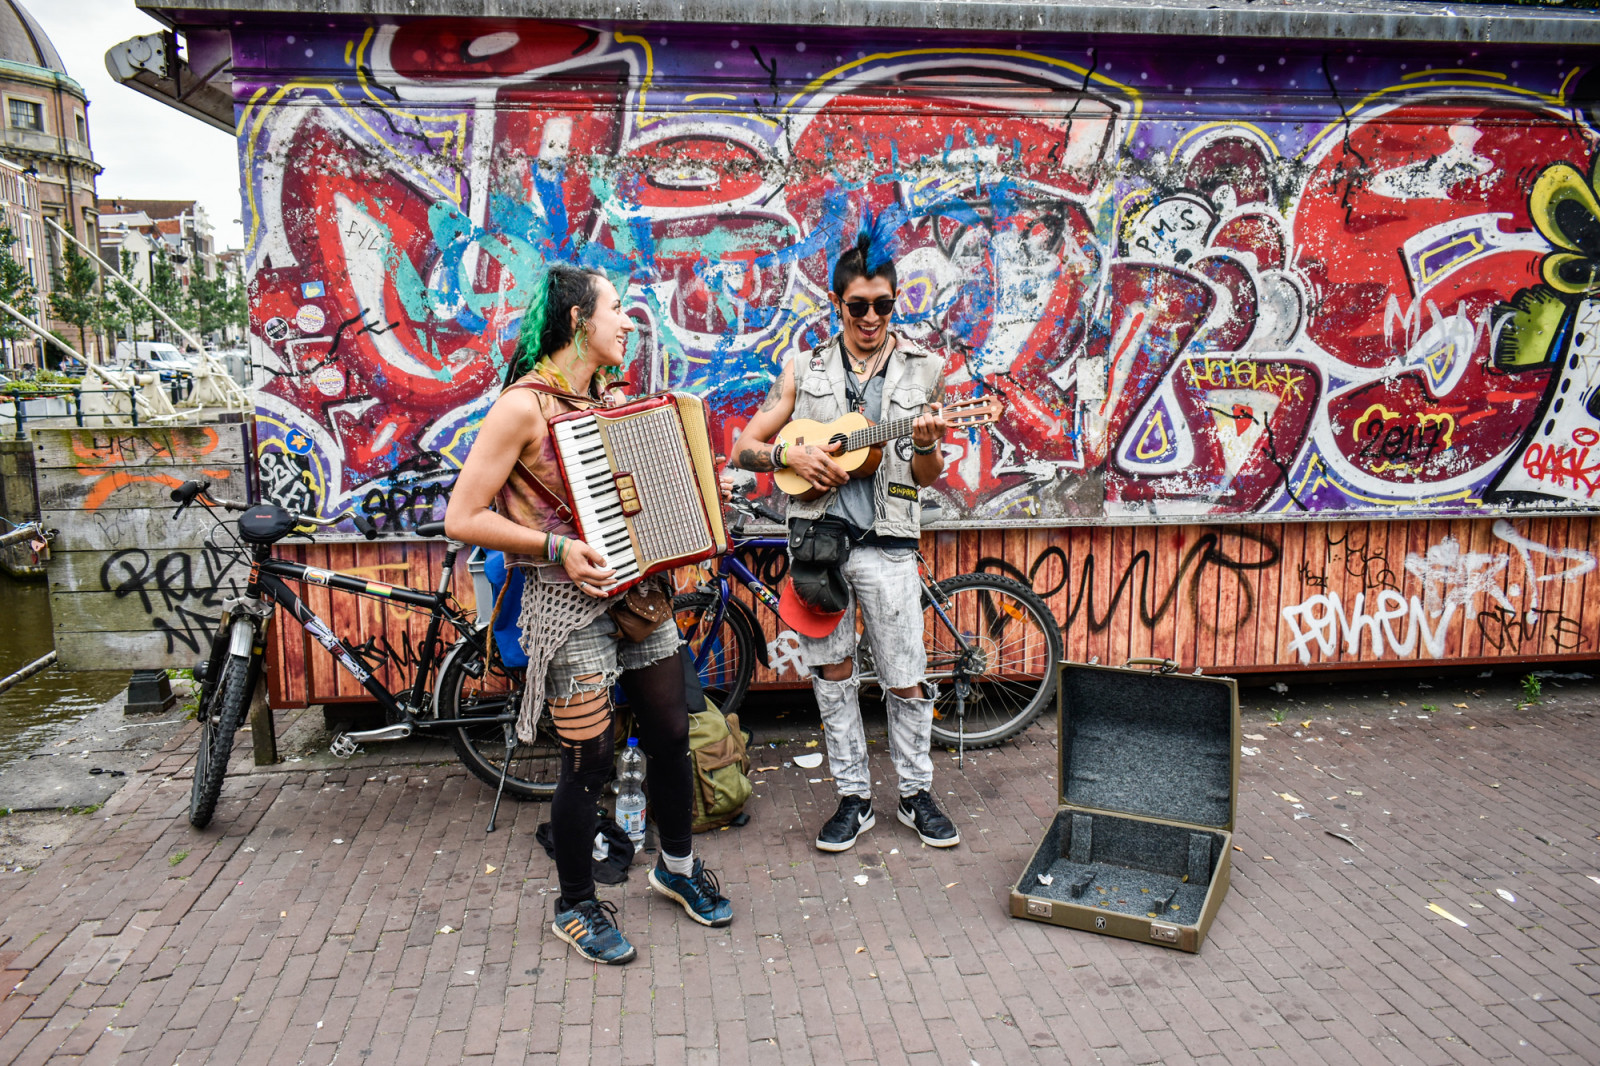 Two guys making street music in Amsterdam